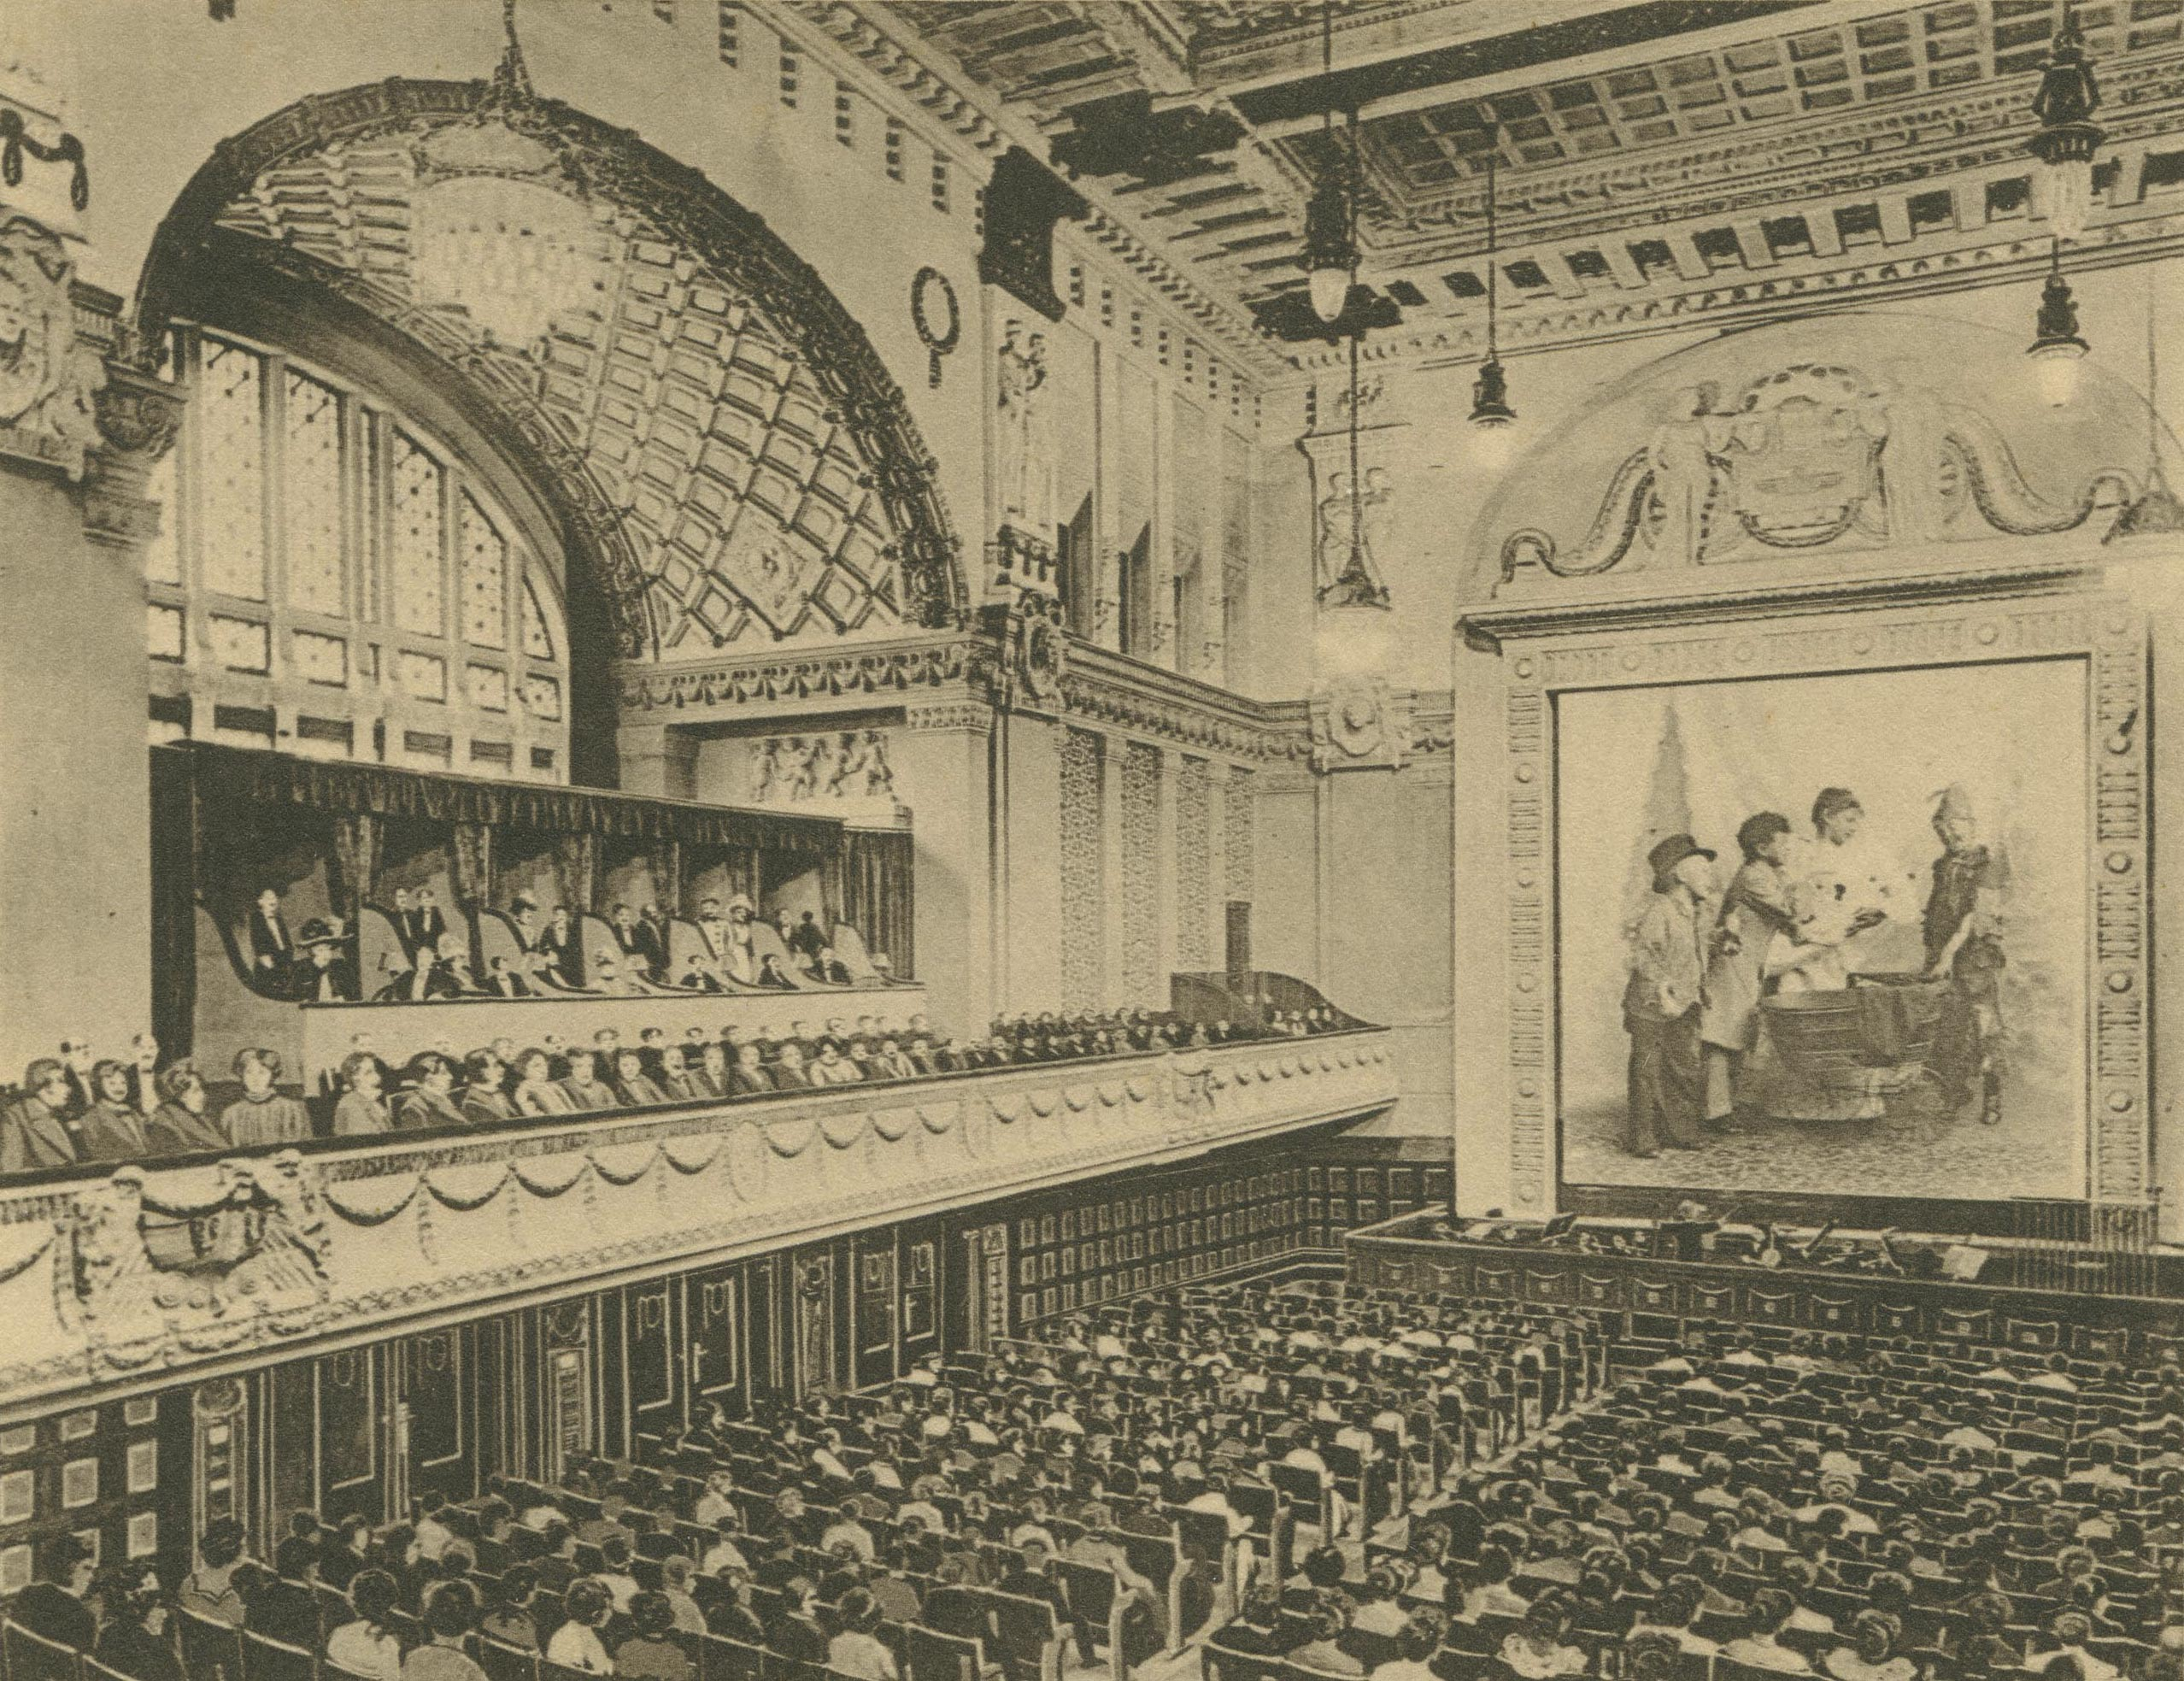 Auditorium with guests facing the screen with balustrade and paneled ceiling.